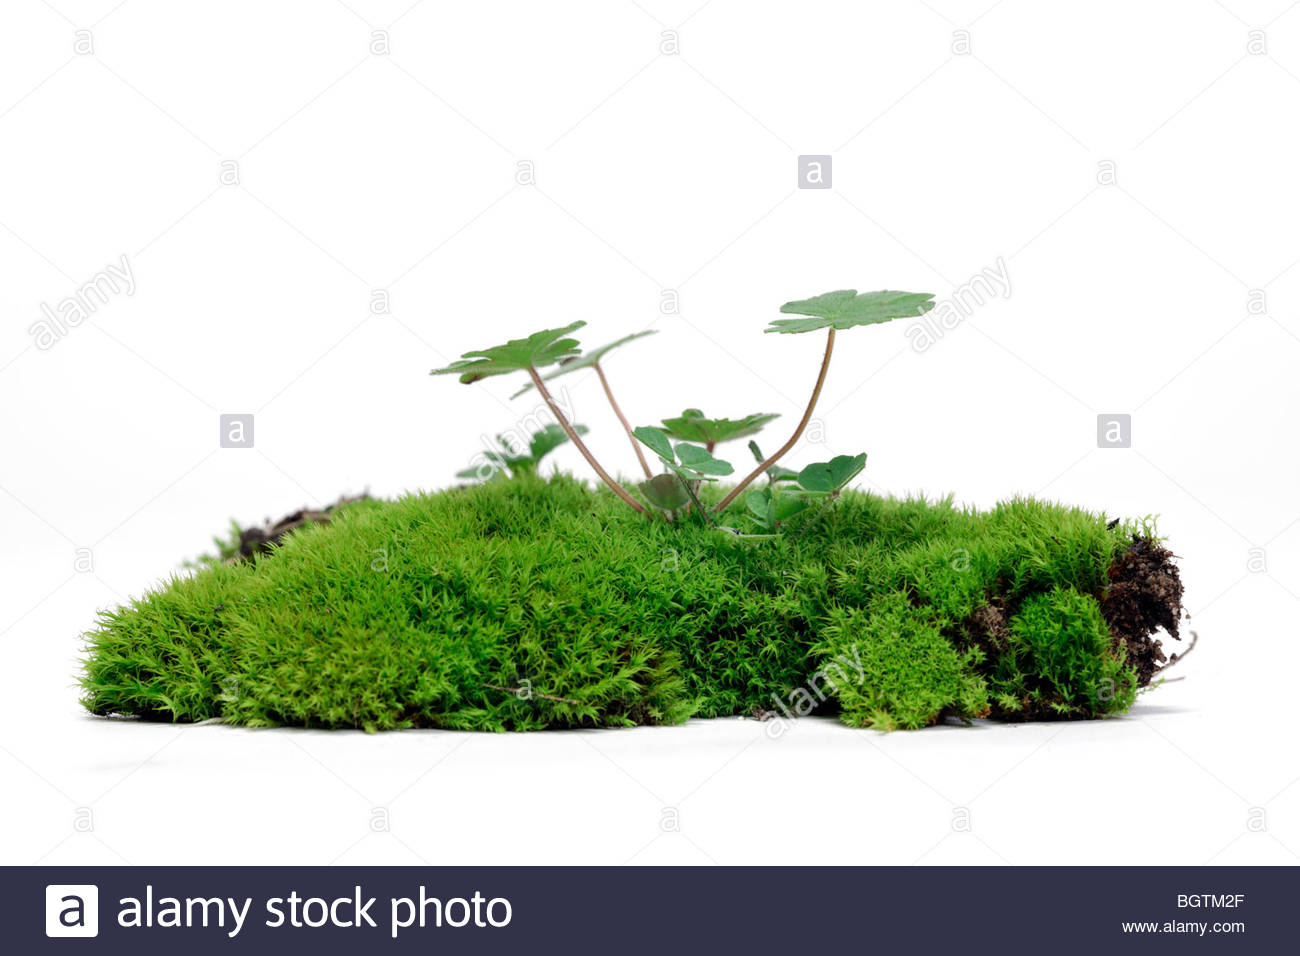 fresh green moss with sprouting young grass - Stock Image